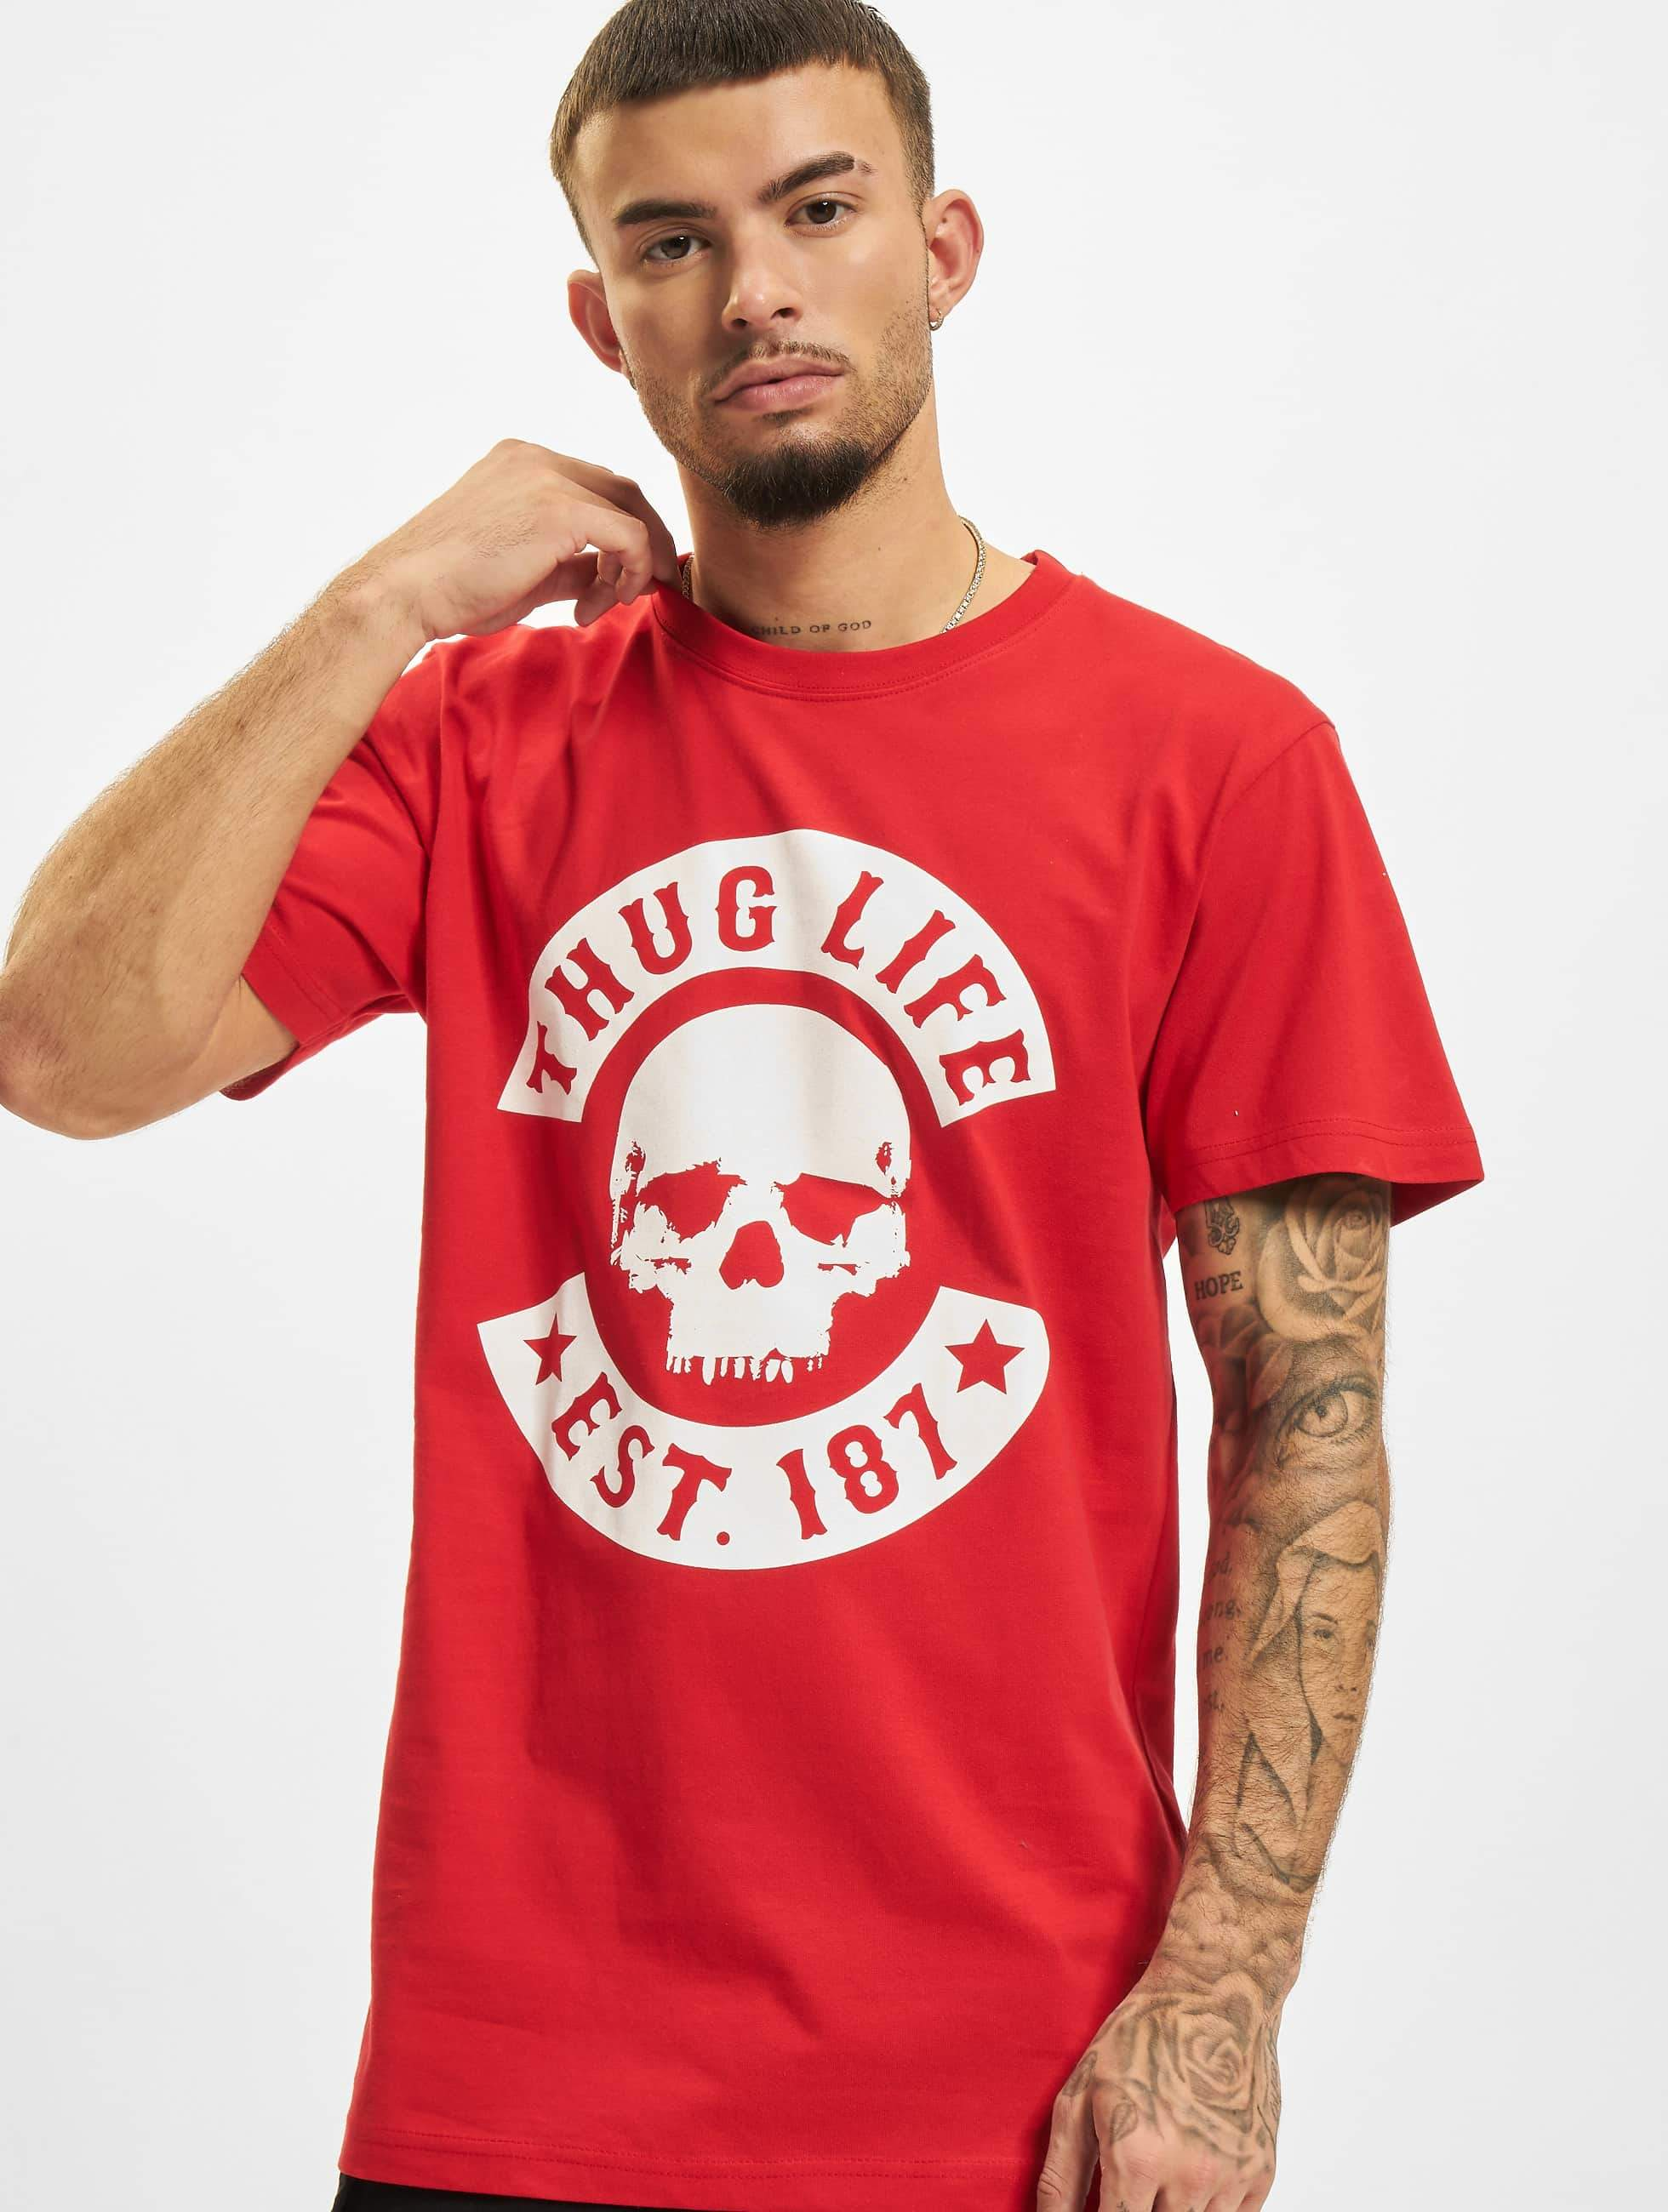 Thug Life / T-Shirt B.Skull in red S